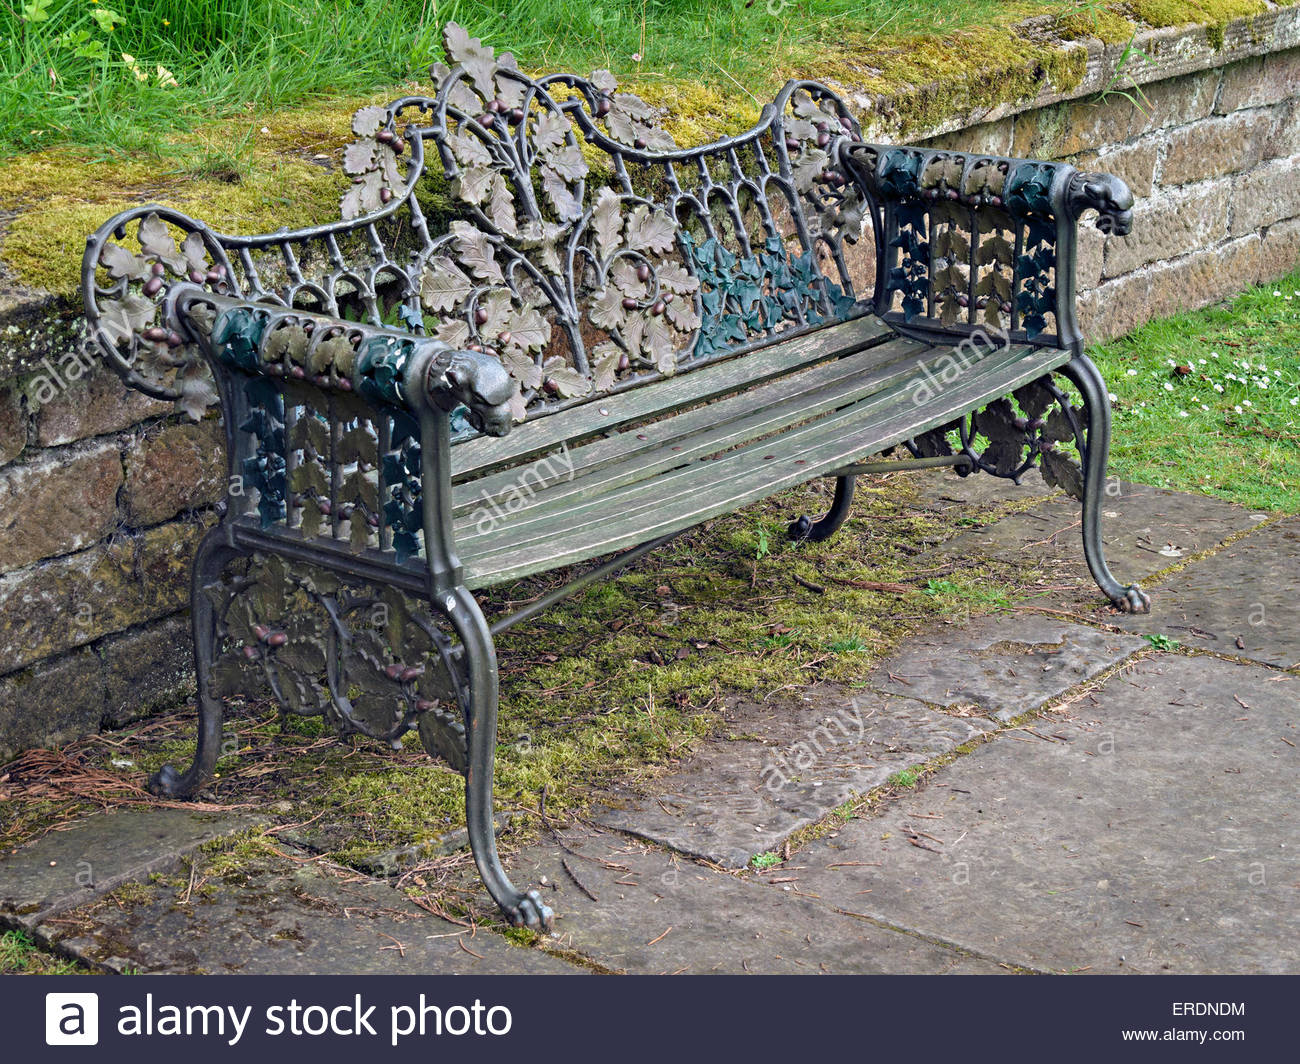 Ornate Painted Cast Metal And Wood Garden Bench Seat With Oak Leaf Design,  Chatsworth Gardens